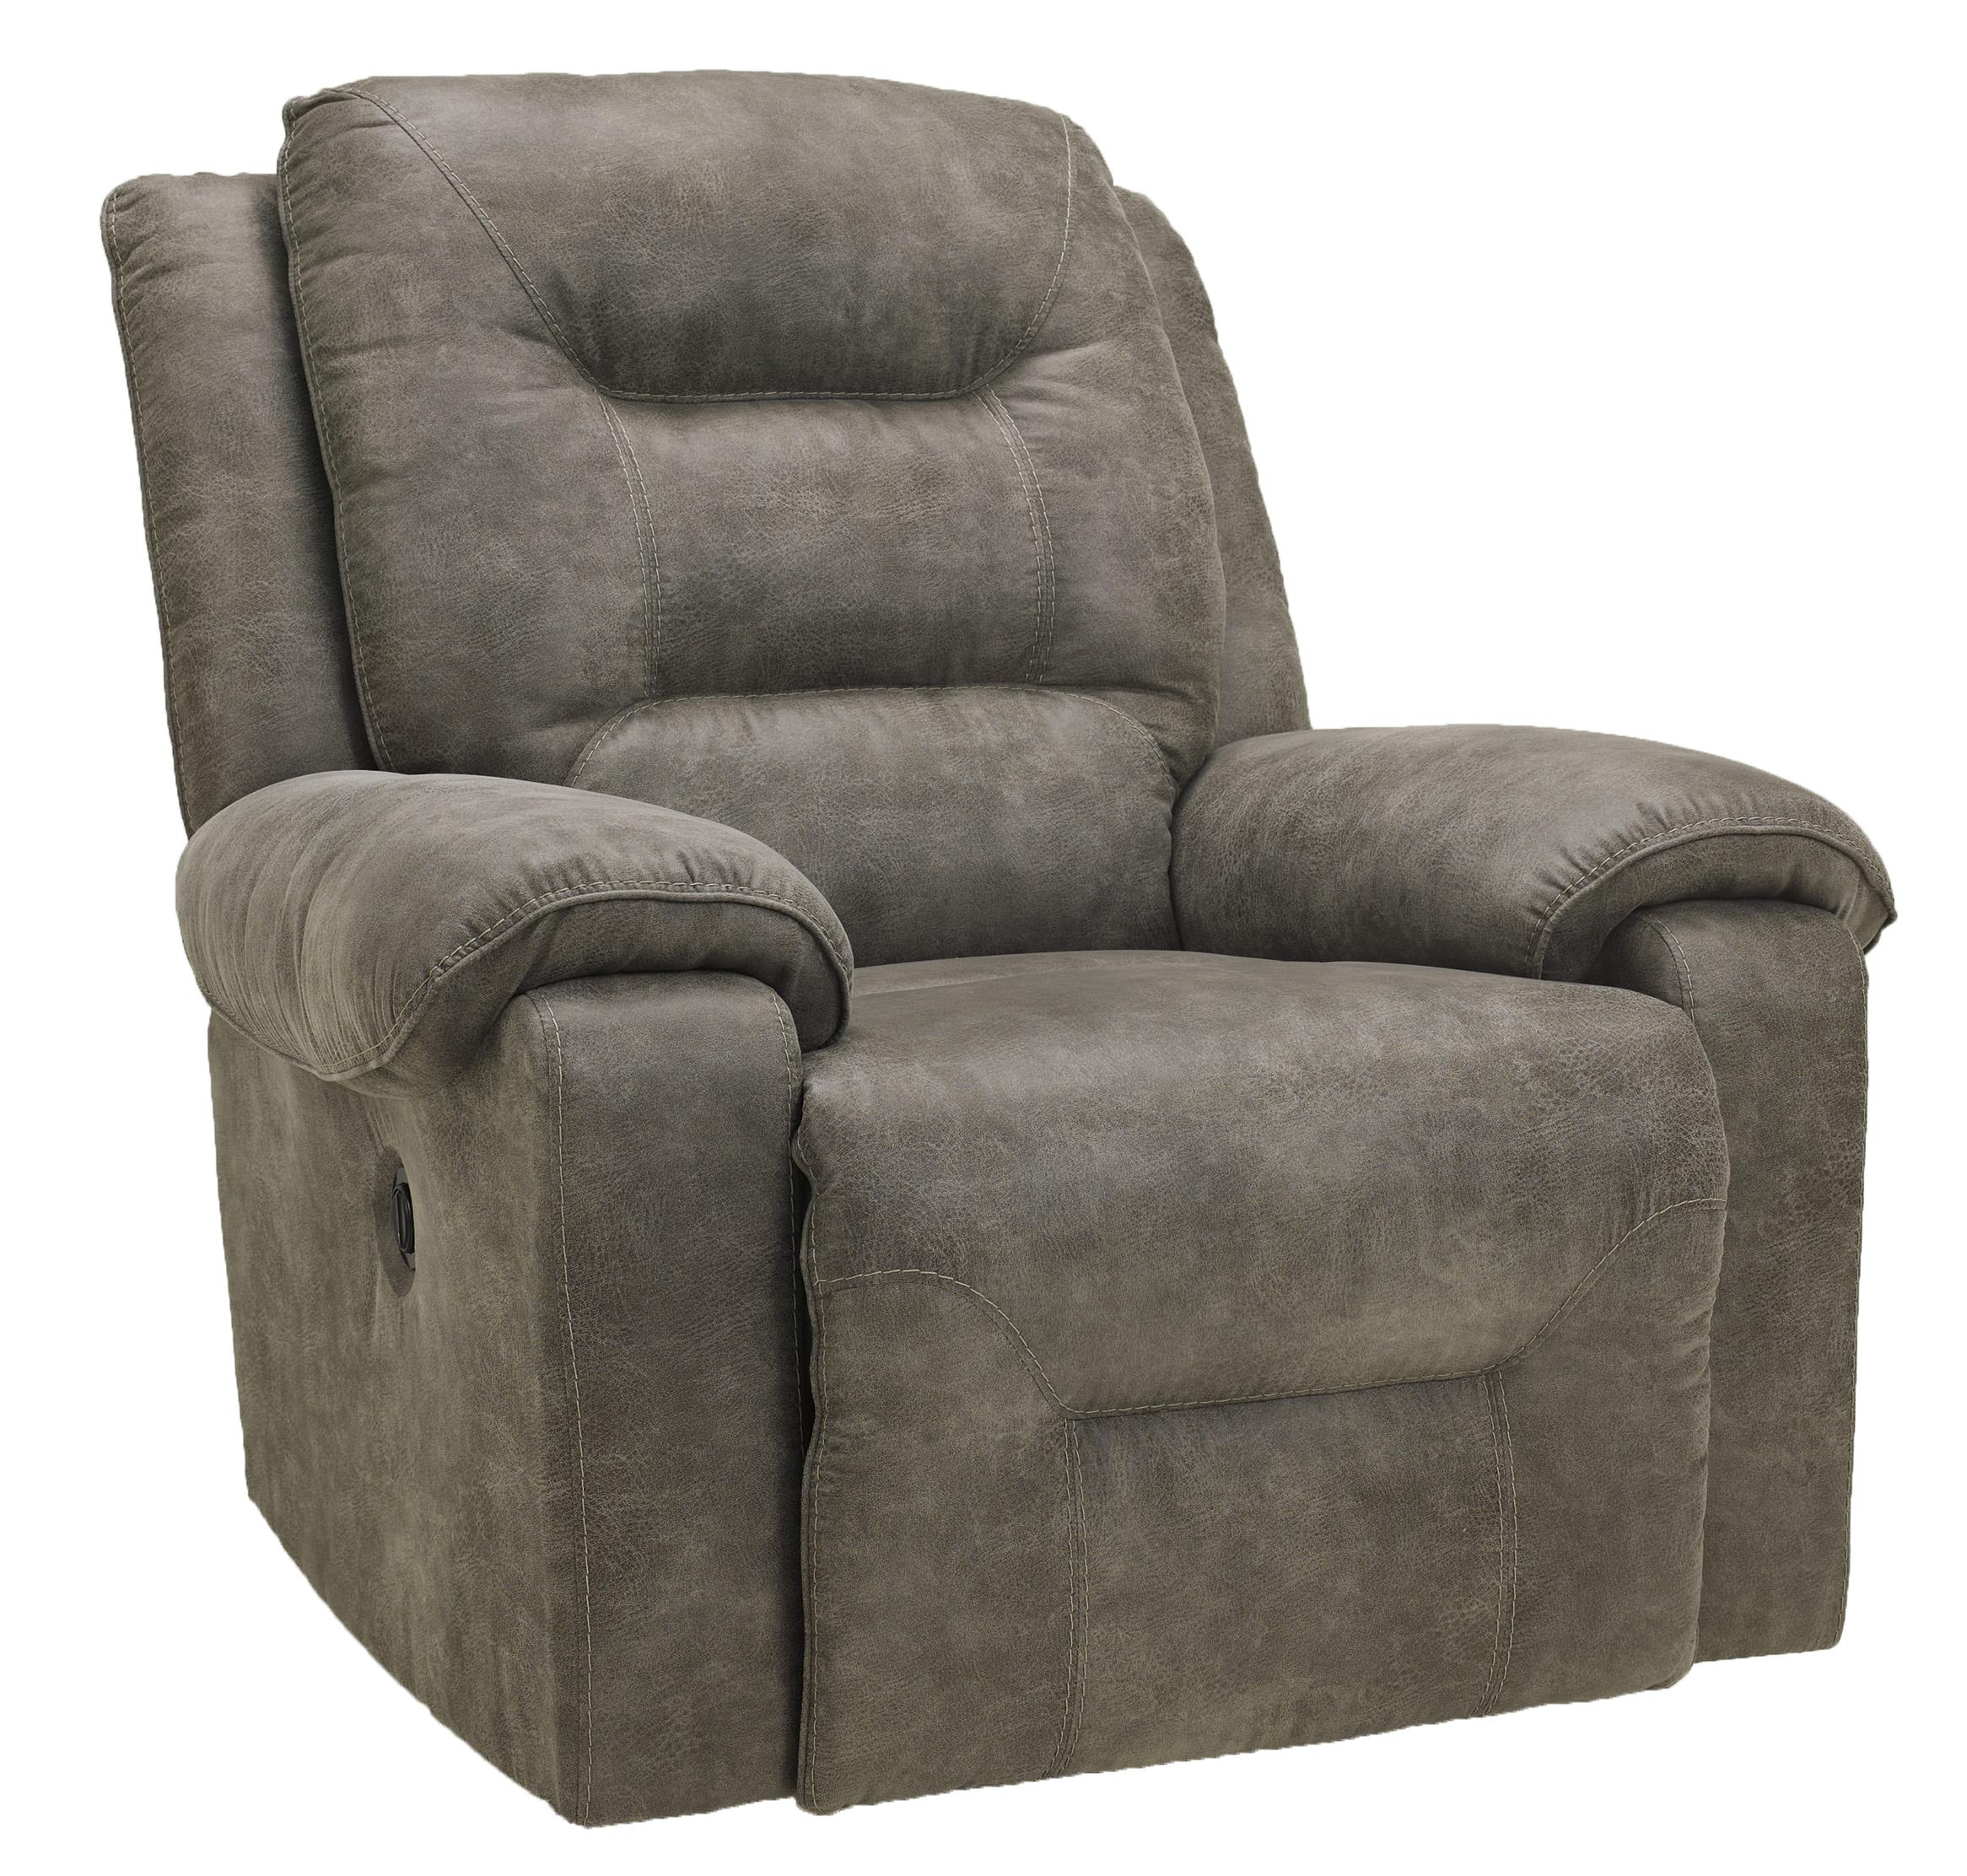 Signature Design by Ashley Rotation - Smoke Rocker Recliner - Item Number: 9750125